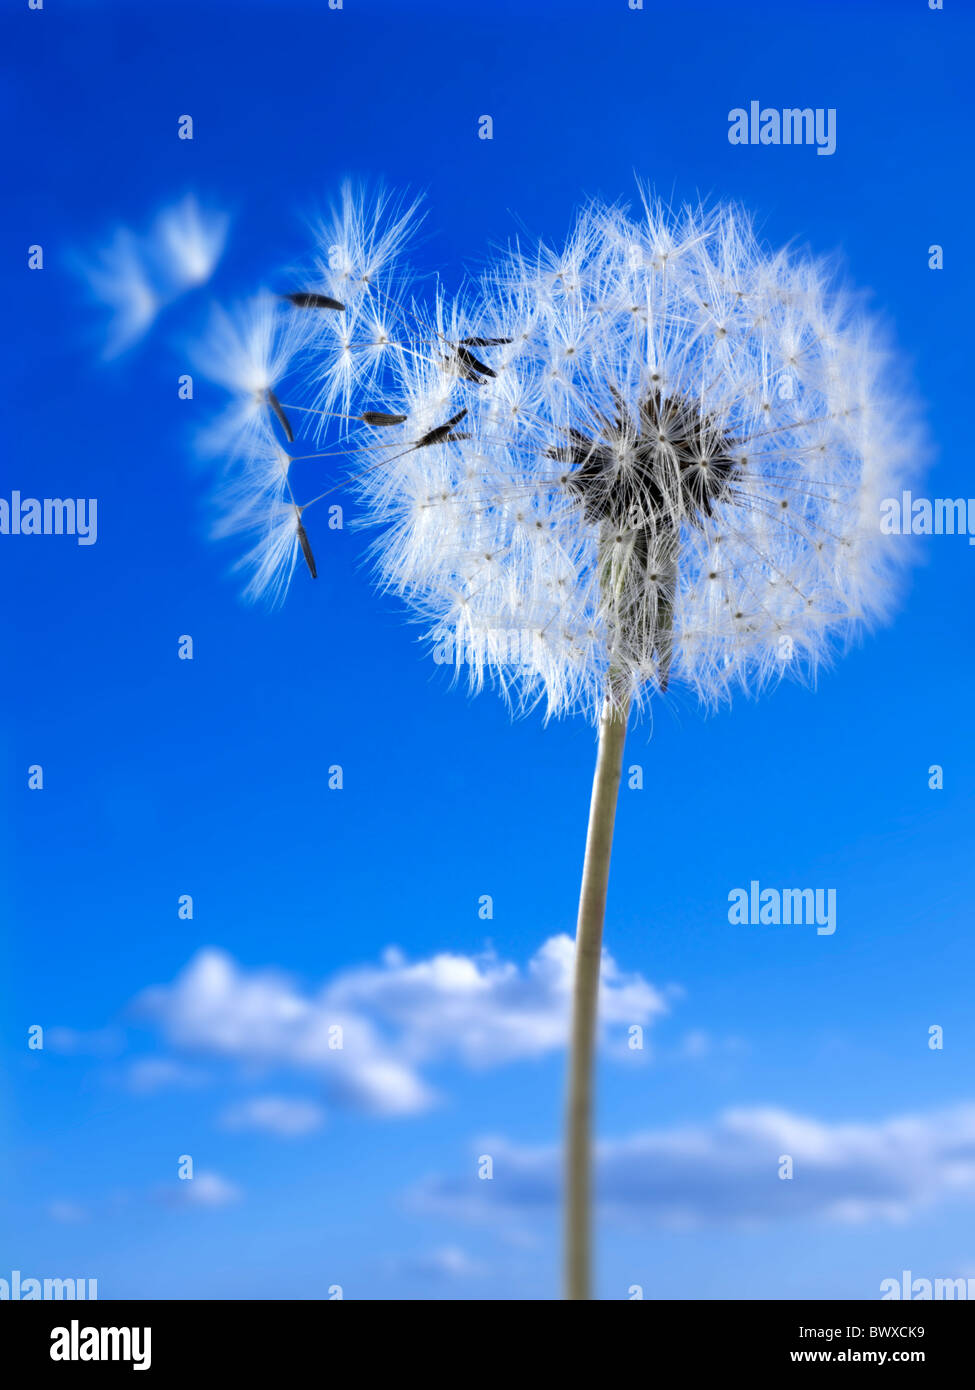 Dandelion clock seed head - Stock Image